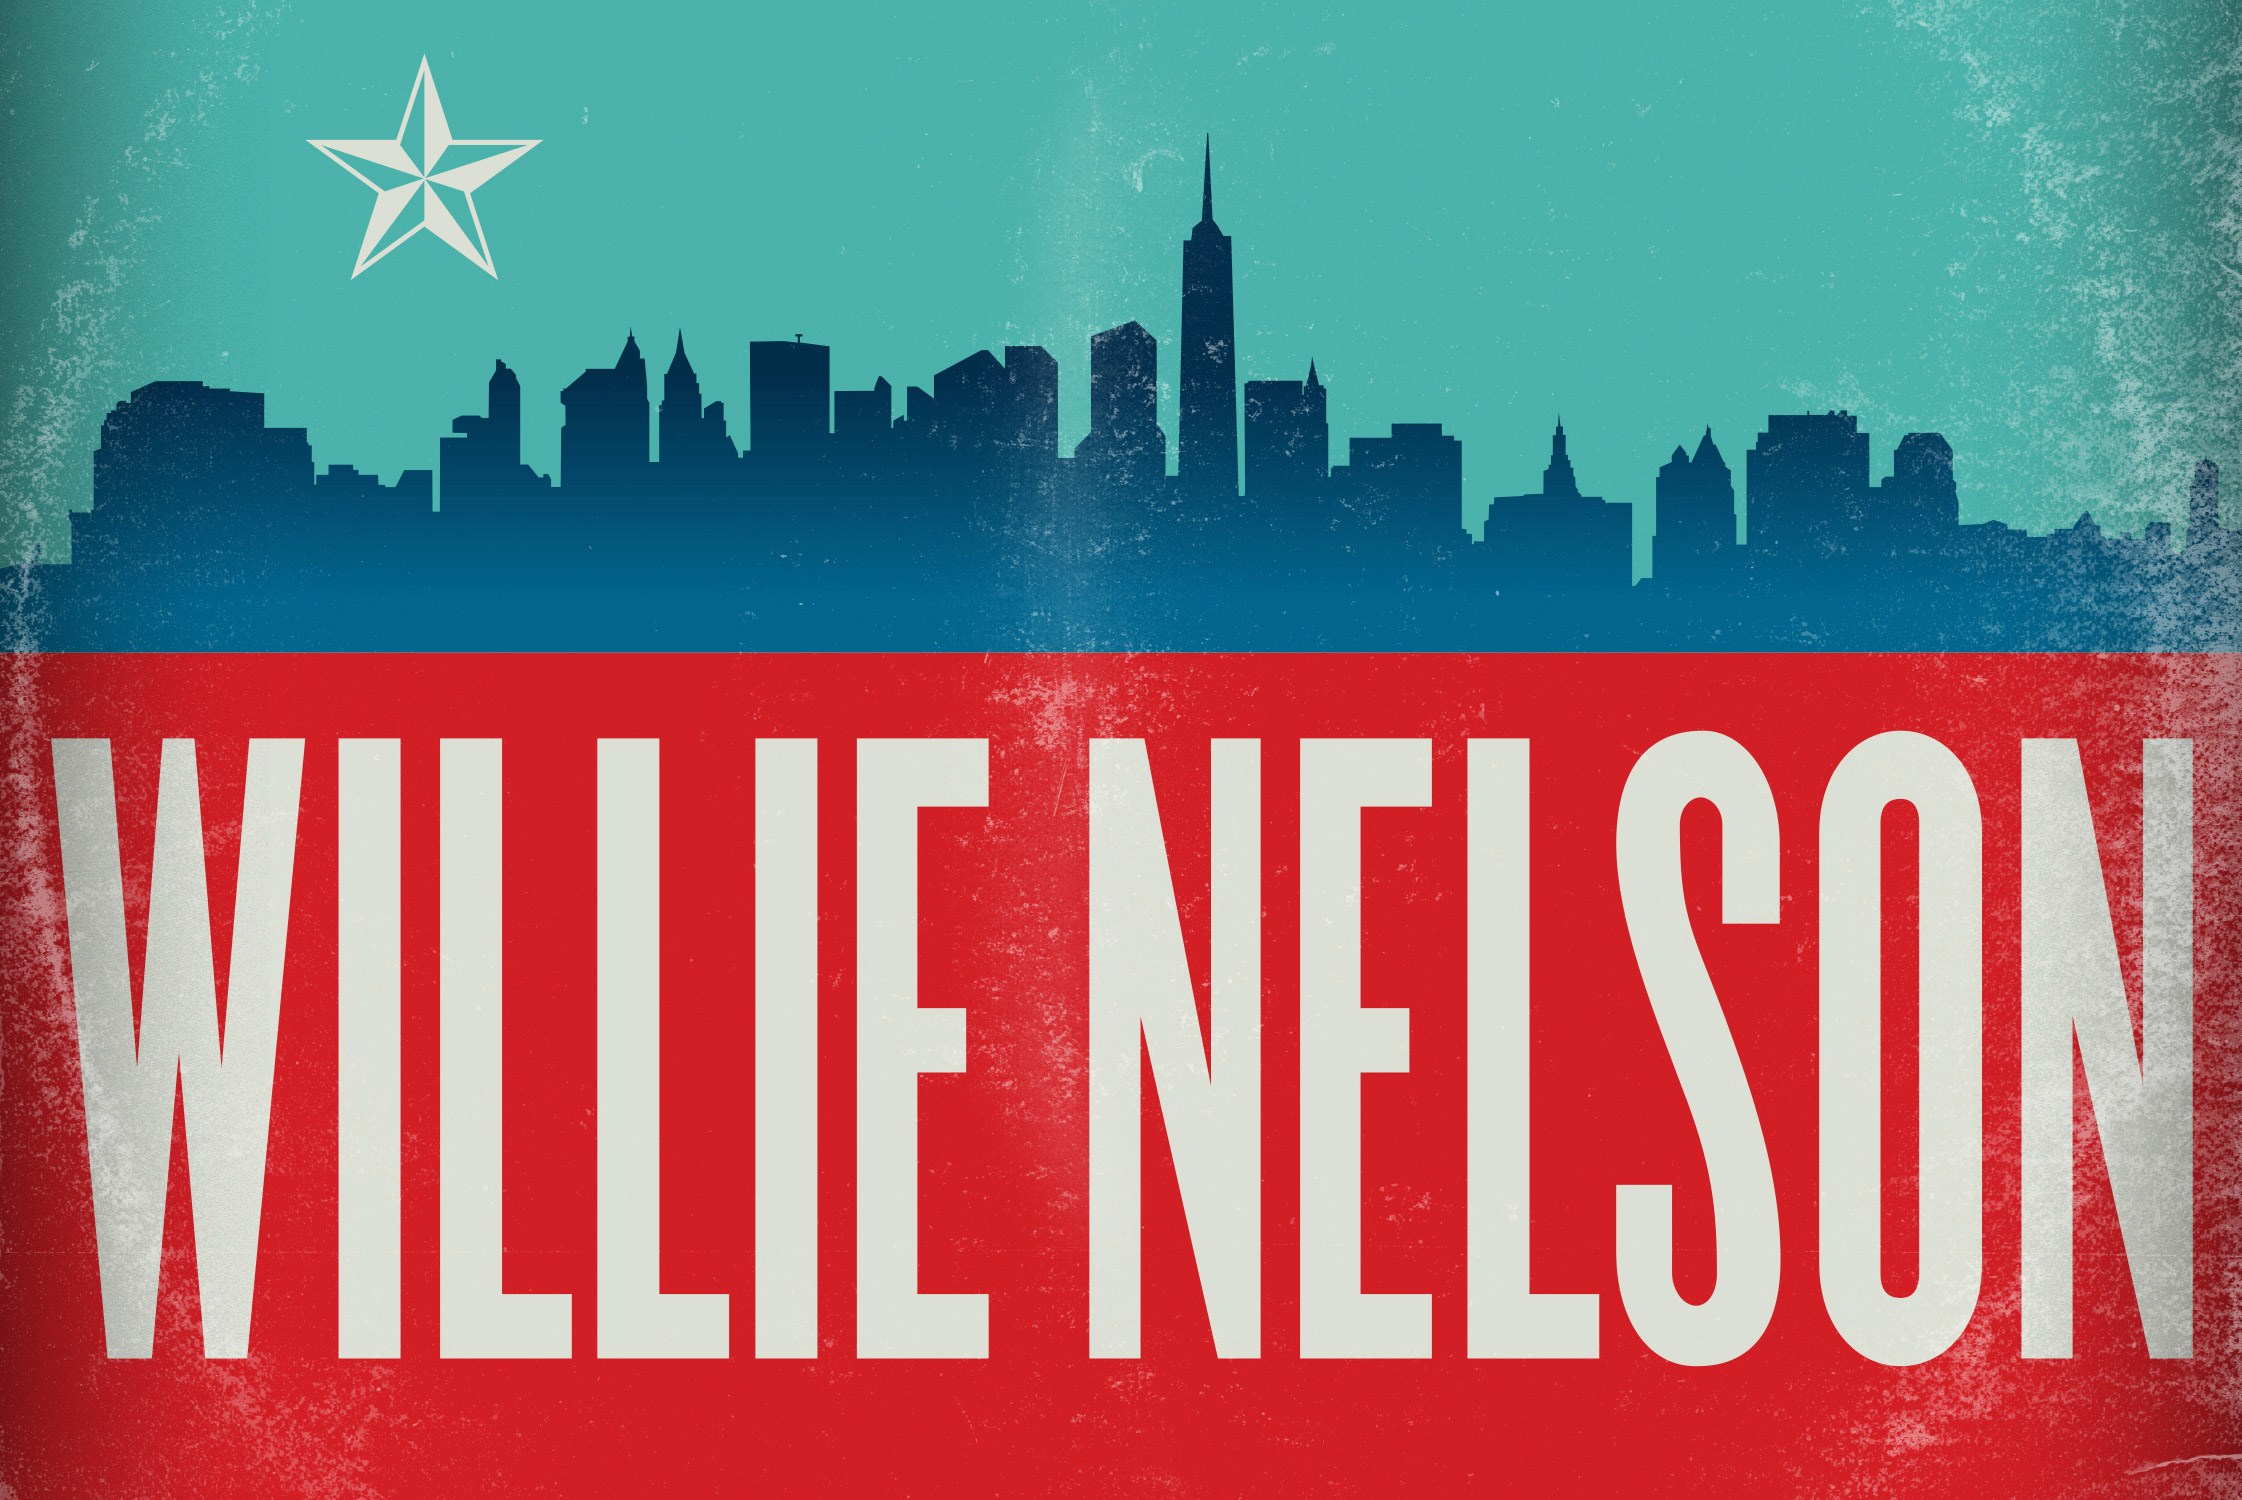 willie_nelson_thumbnail.jpg